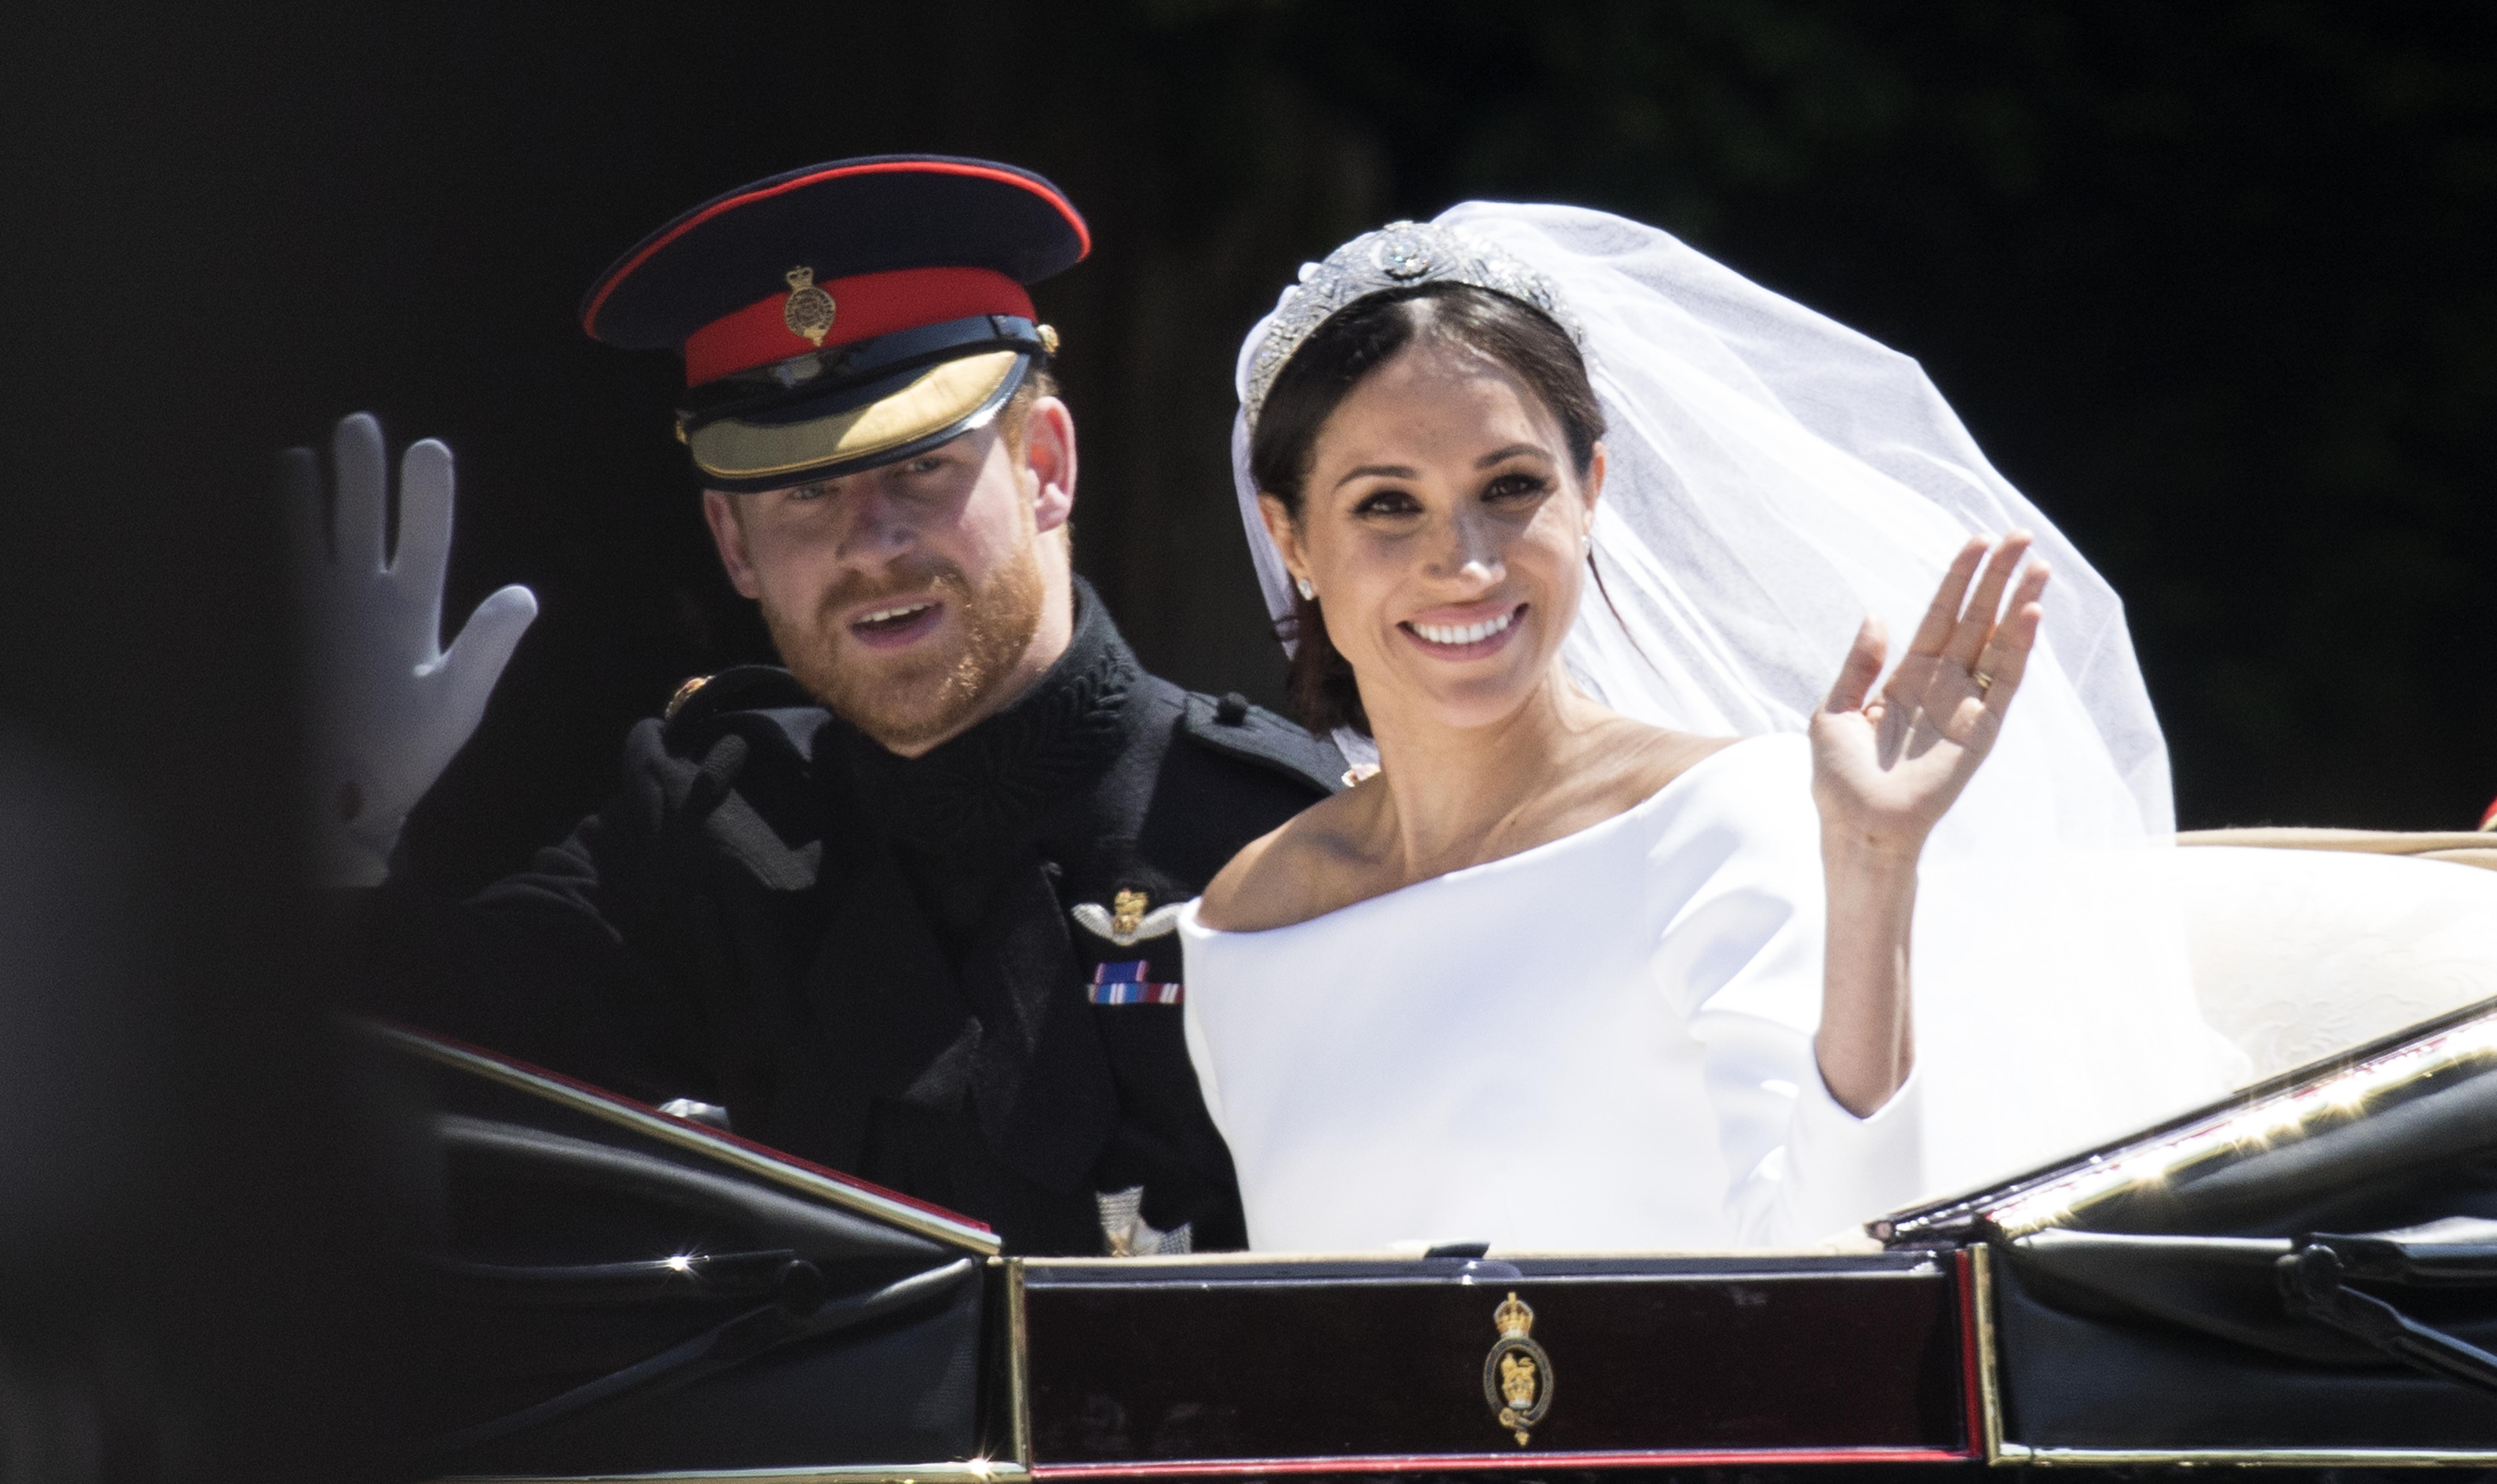 Prince Harry Marries Ms. Meghan Markle - Atmosphere